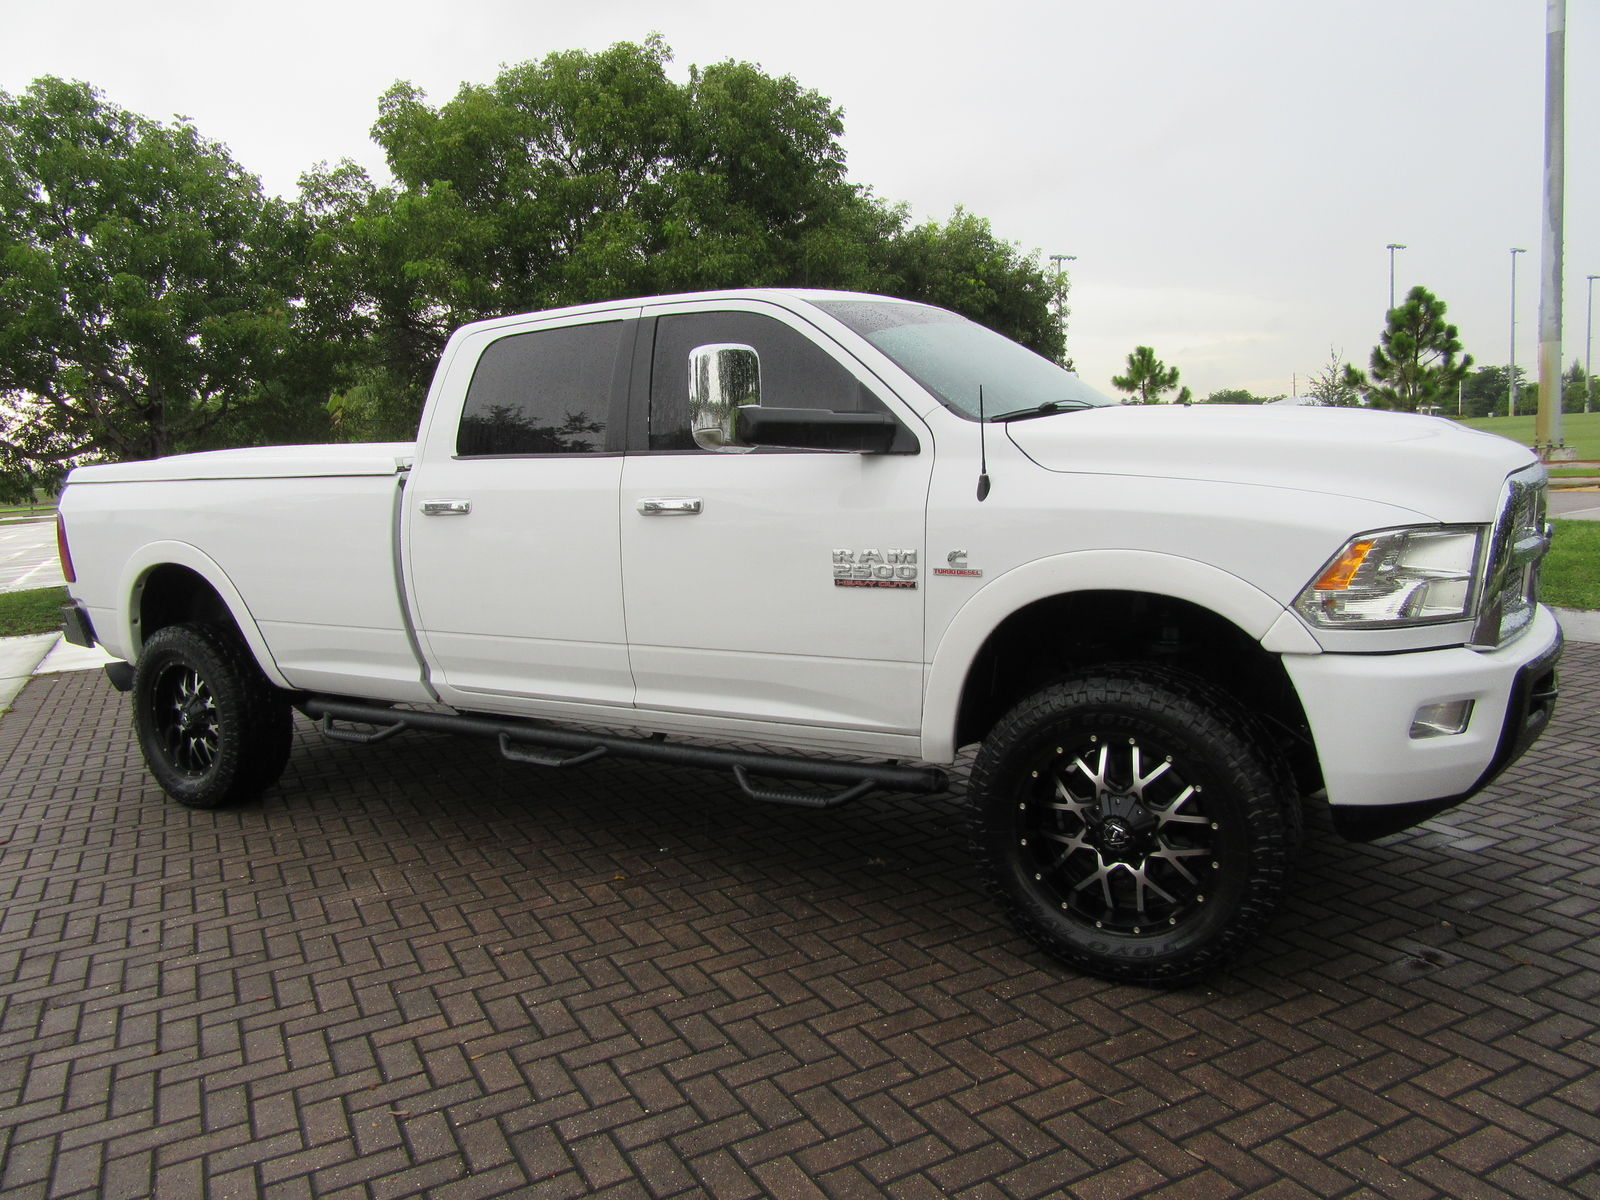 nicely loaded 2010 Dodge Ram 2500 Laramie lifted